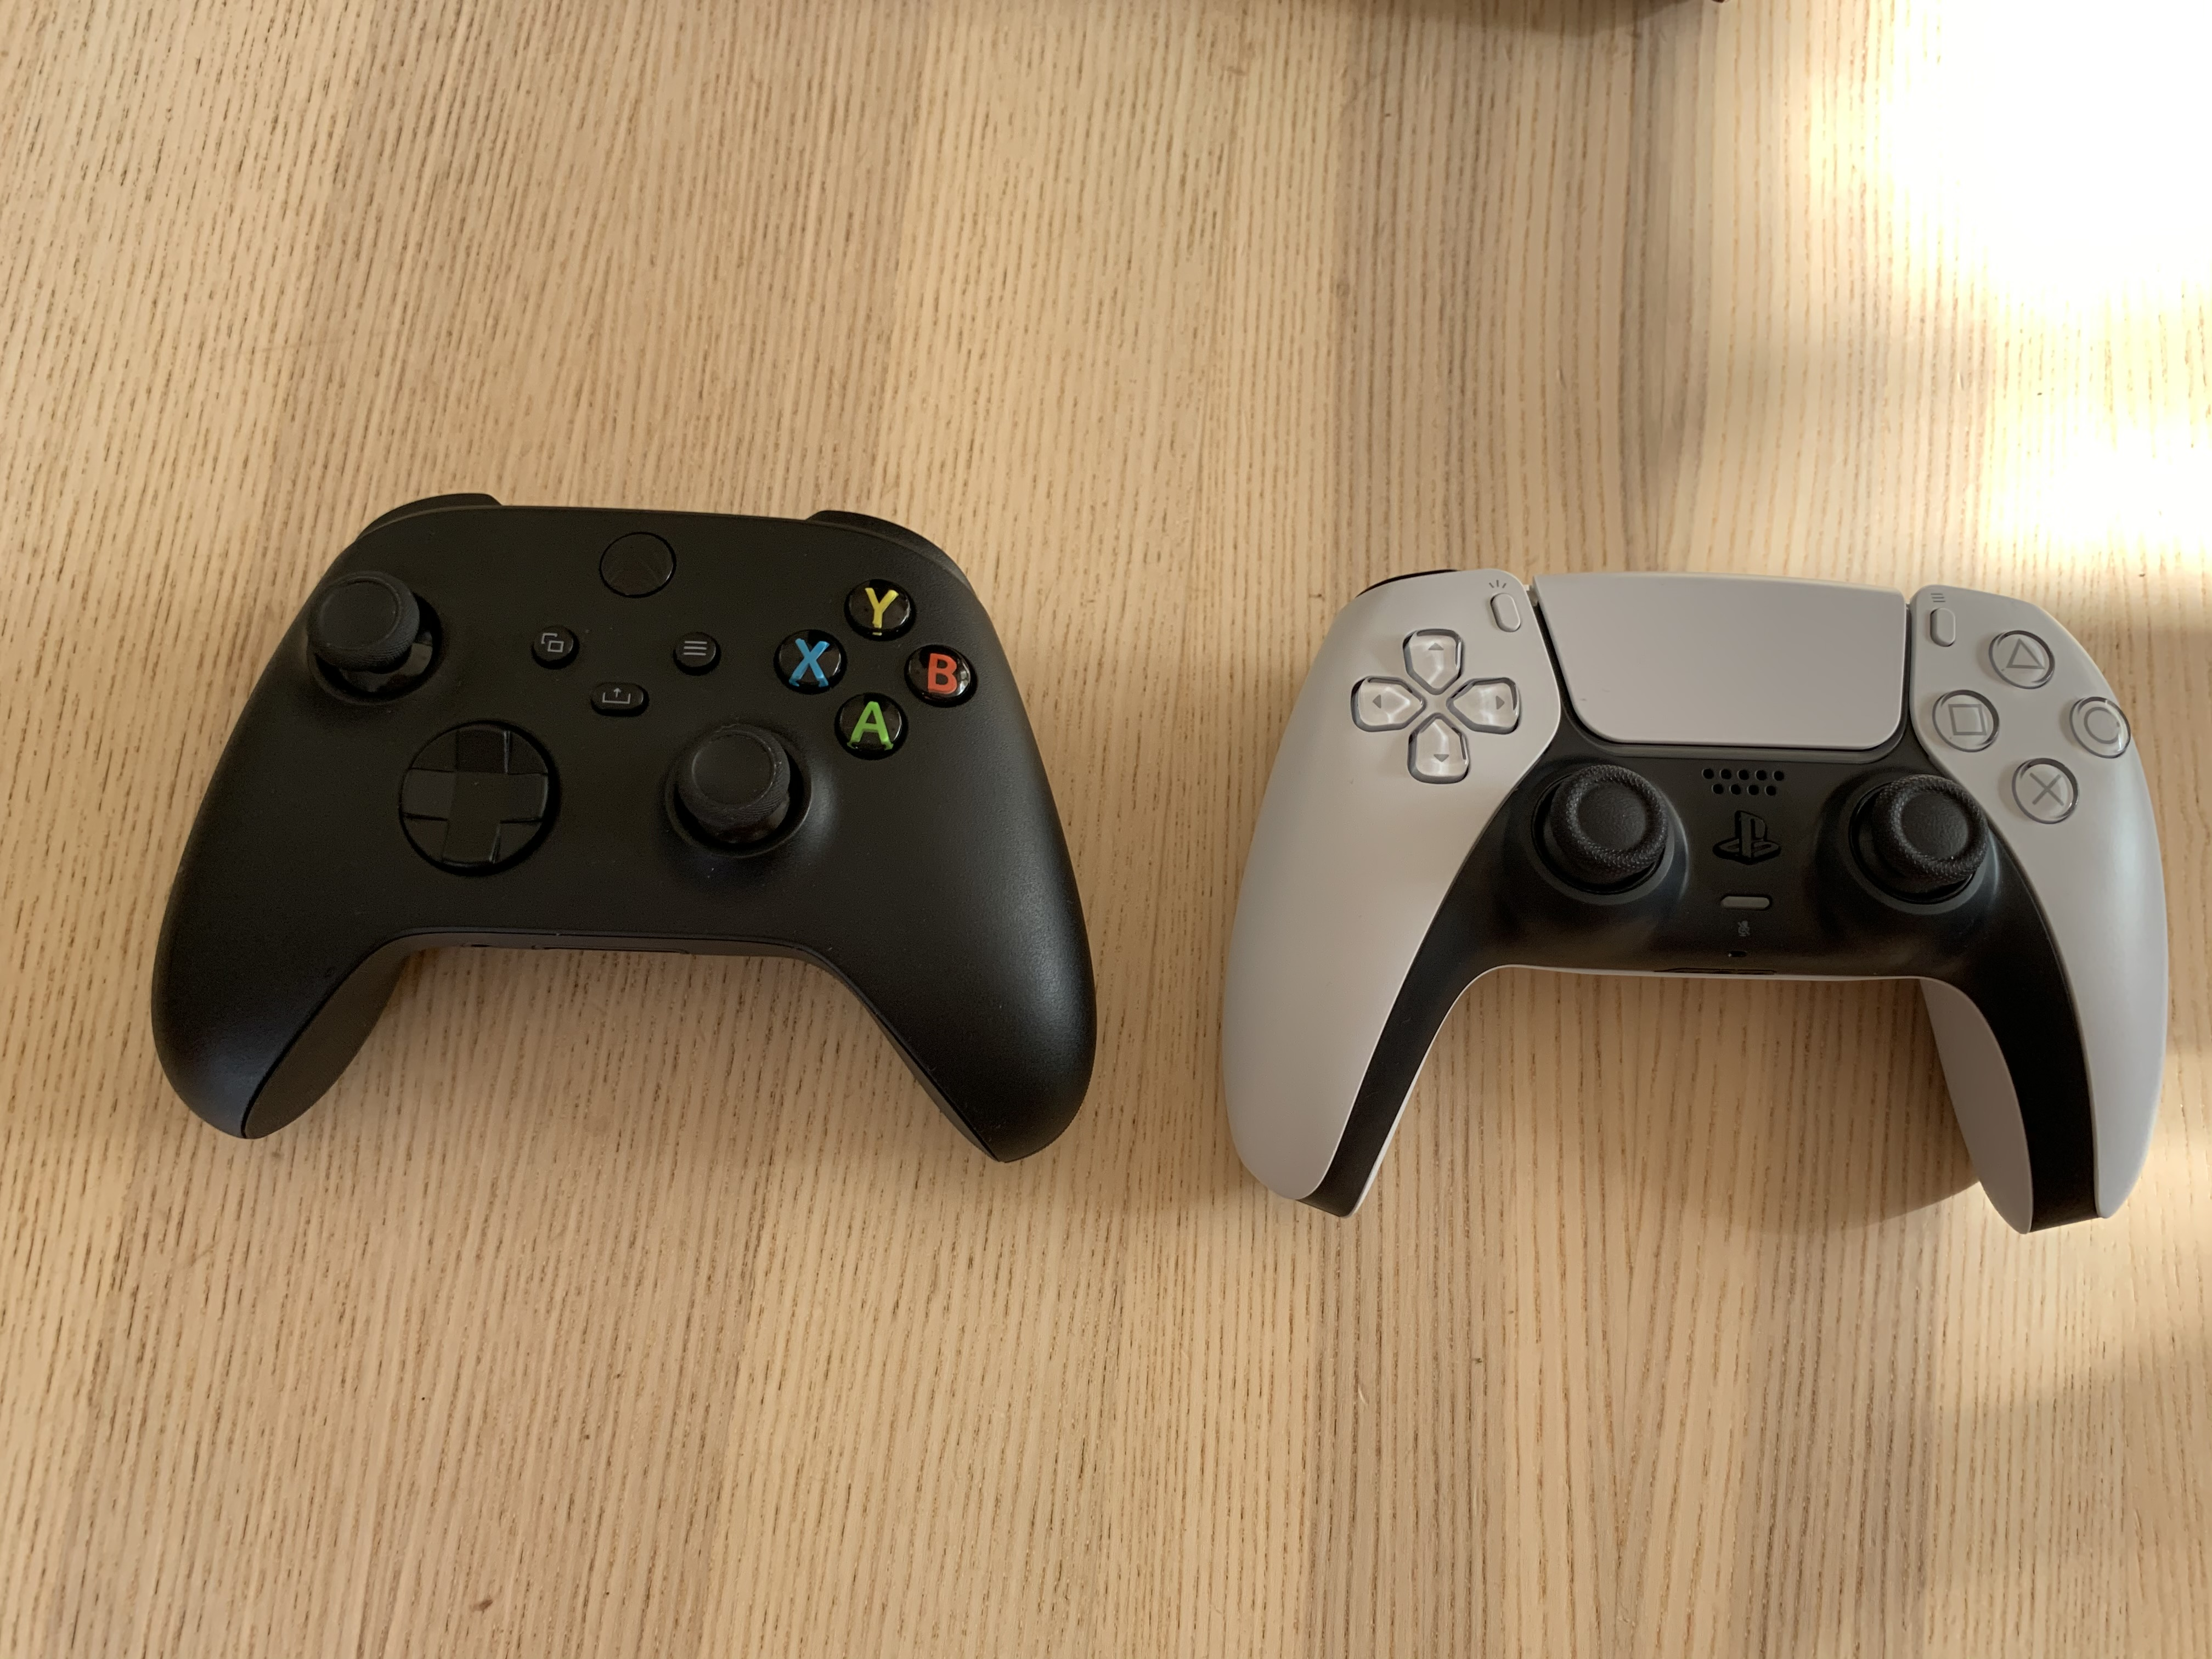 Xbox Series X vs. PlayStation 5 controller